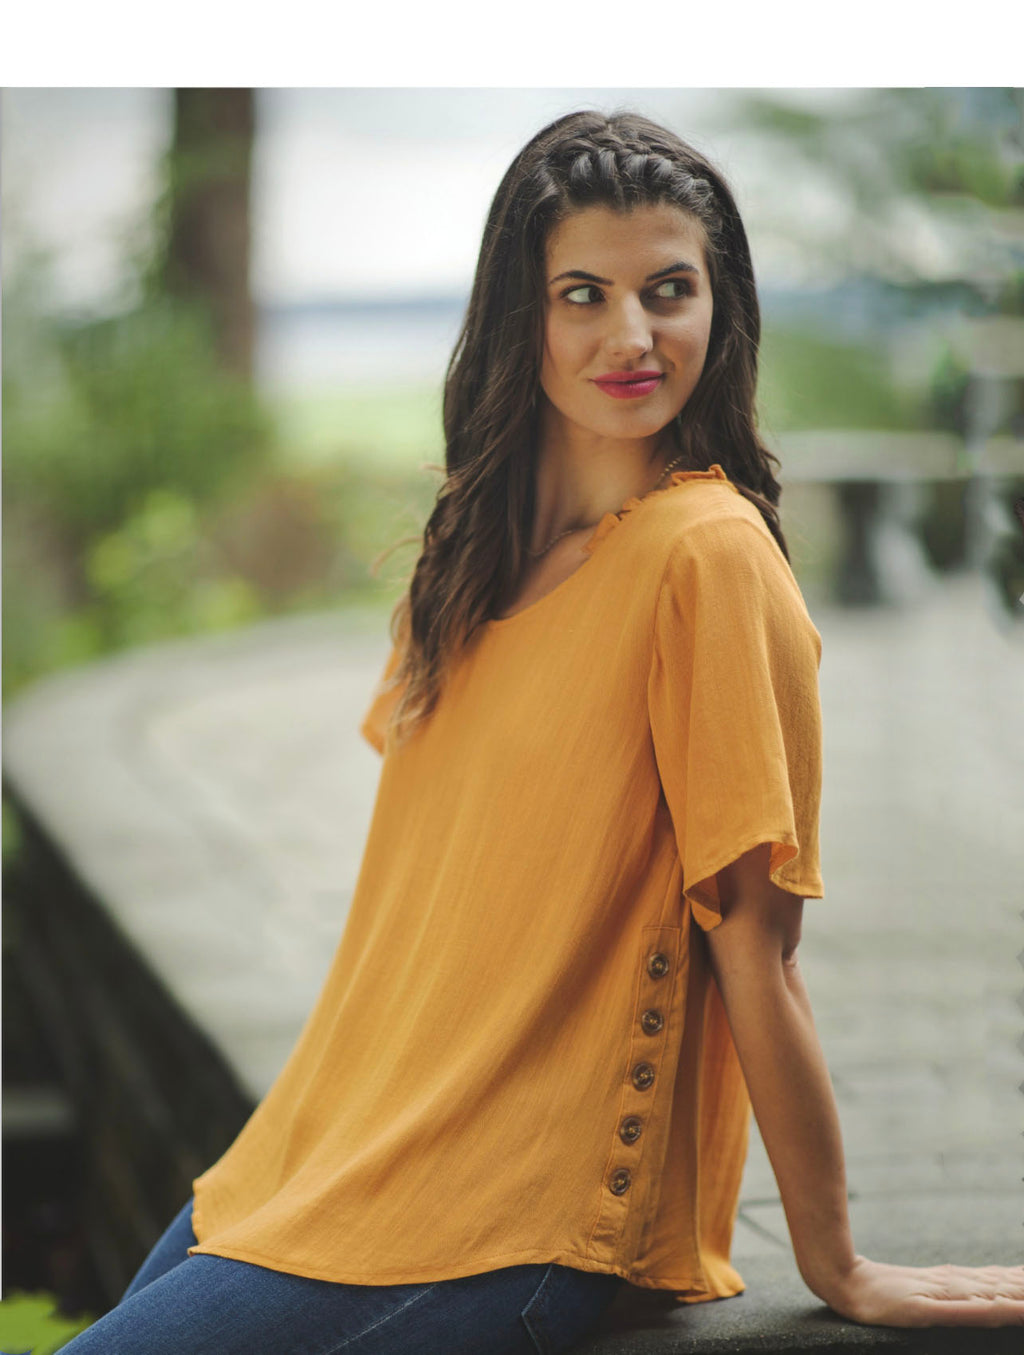 Papillon Button Blouse in Yellow